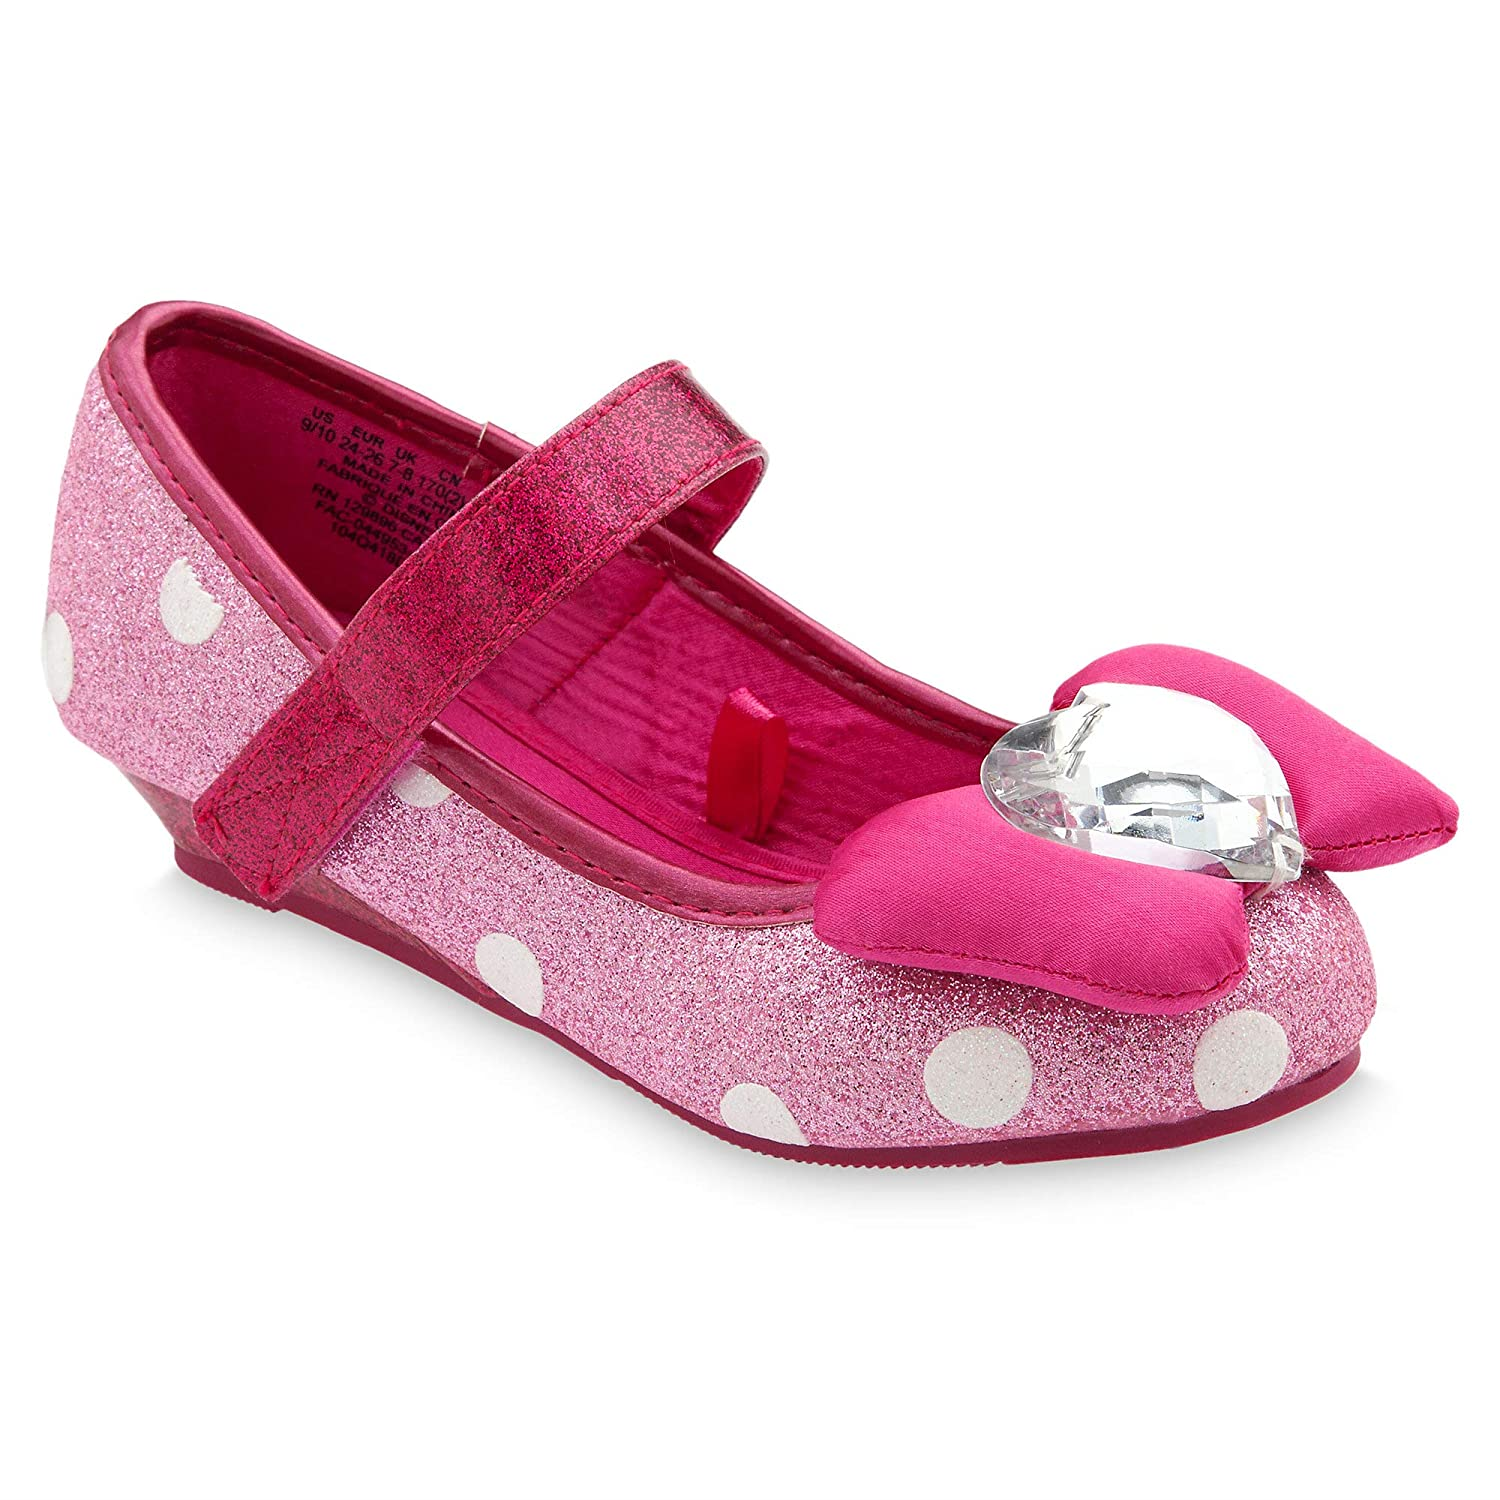 Disney Minnie Mouse Costume Shoes for Kids - Pink Pink